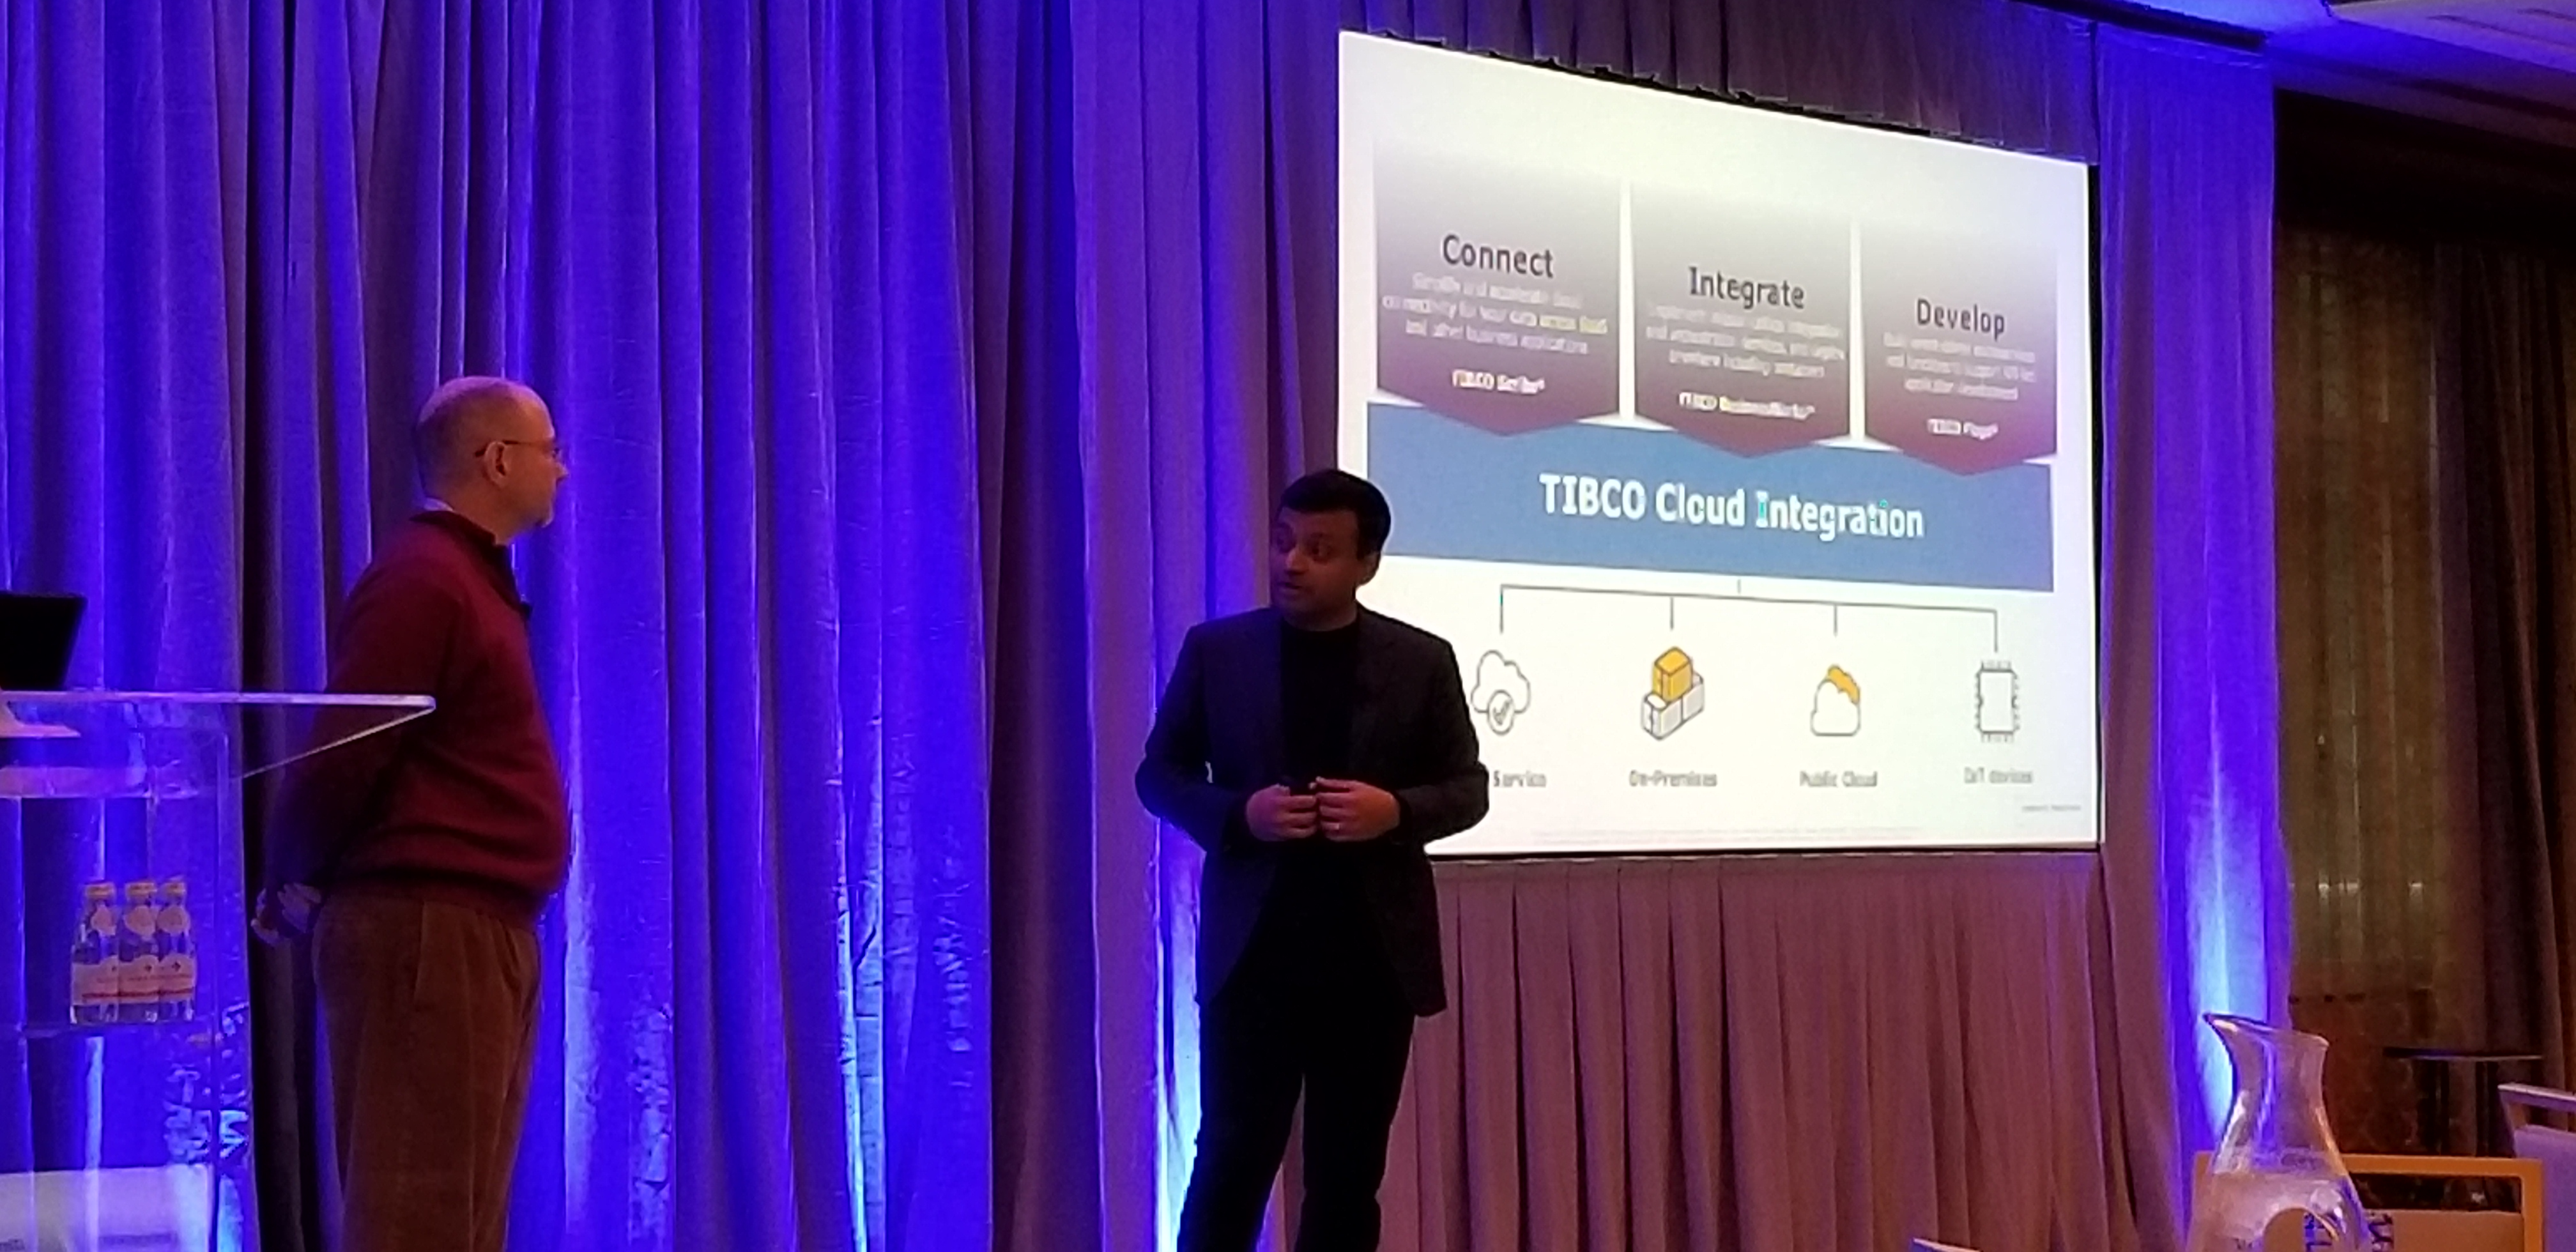 Rajeev Kozhikkattuthodi VP of Product Management and Todd Bailey, Director of Product Management sharing what's new for TIBCO Cloud Integration.